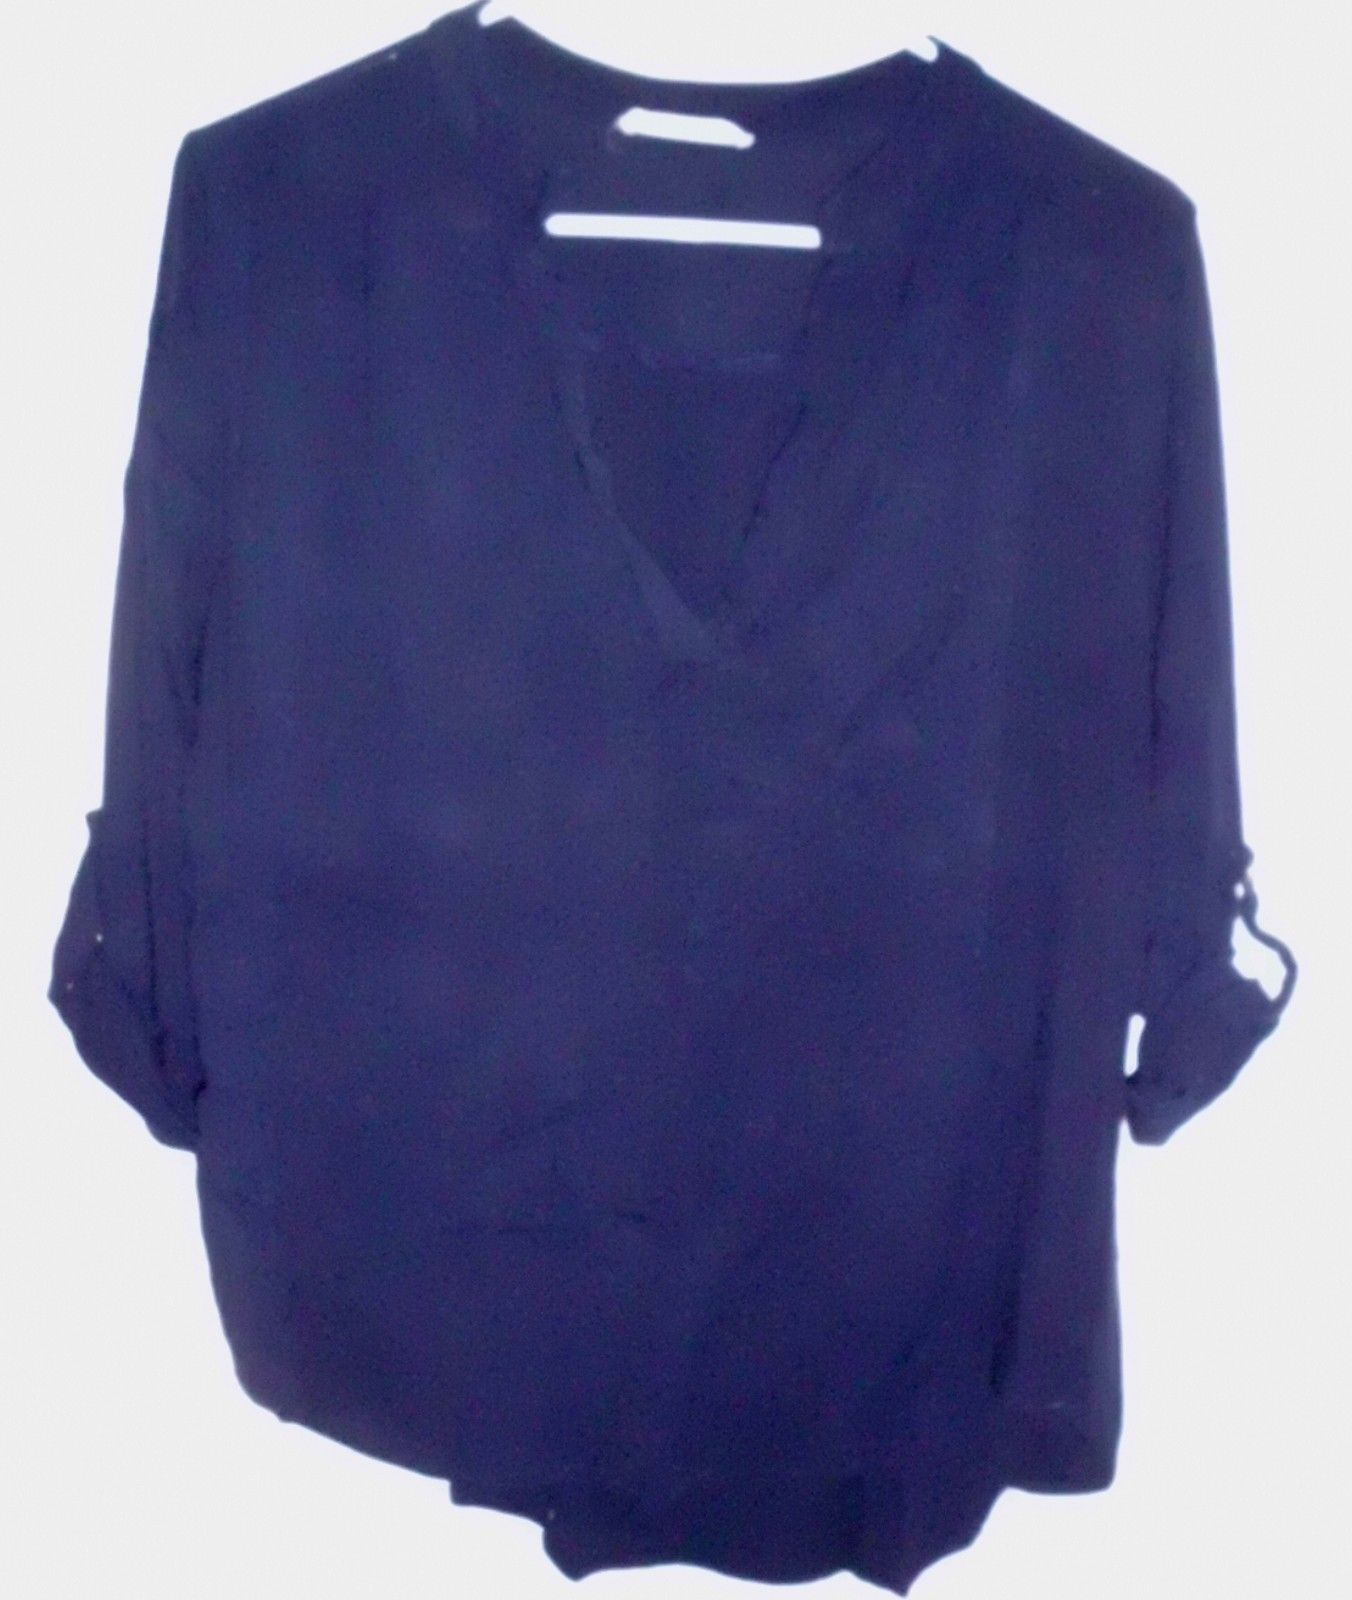 Primary image for ENTRO High Low Shirt Top Sz Large Women's Blue Loop-Roll Sleeves